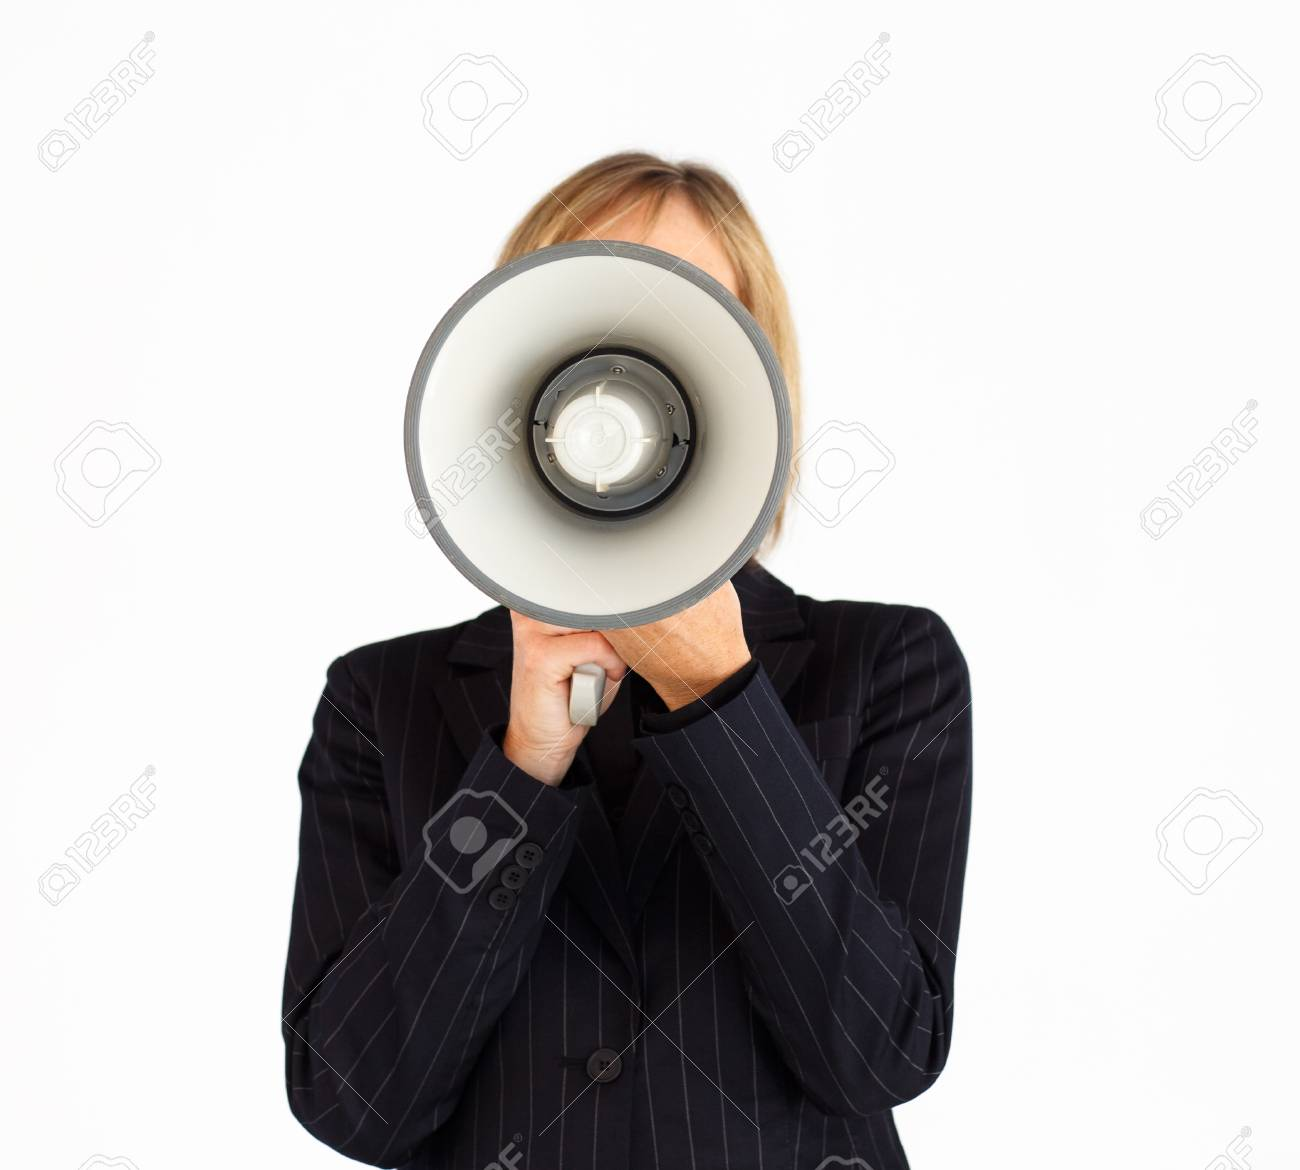 How to hide the number: Megaphone 65